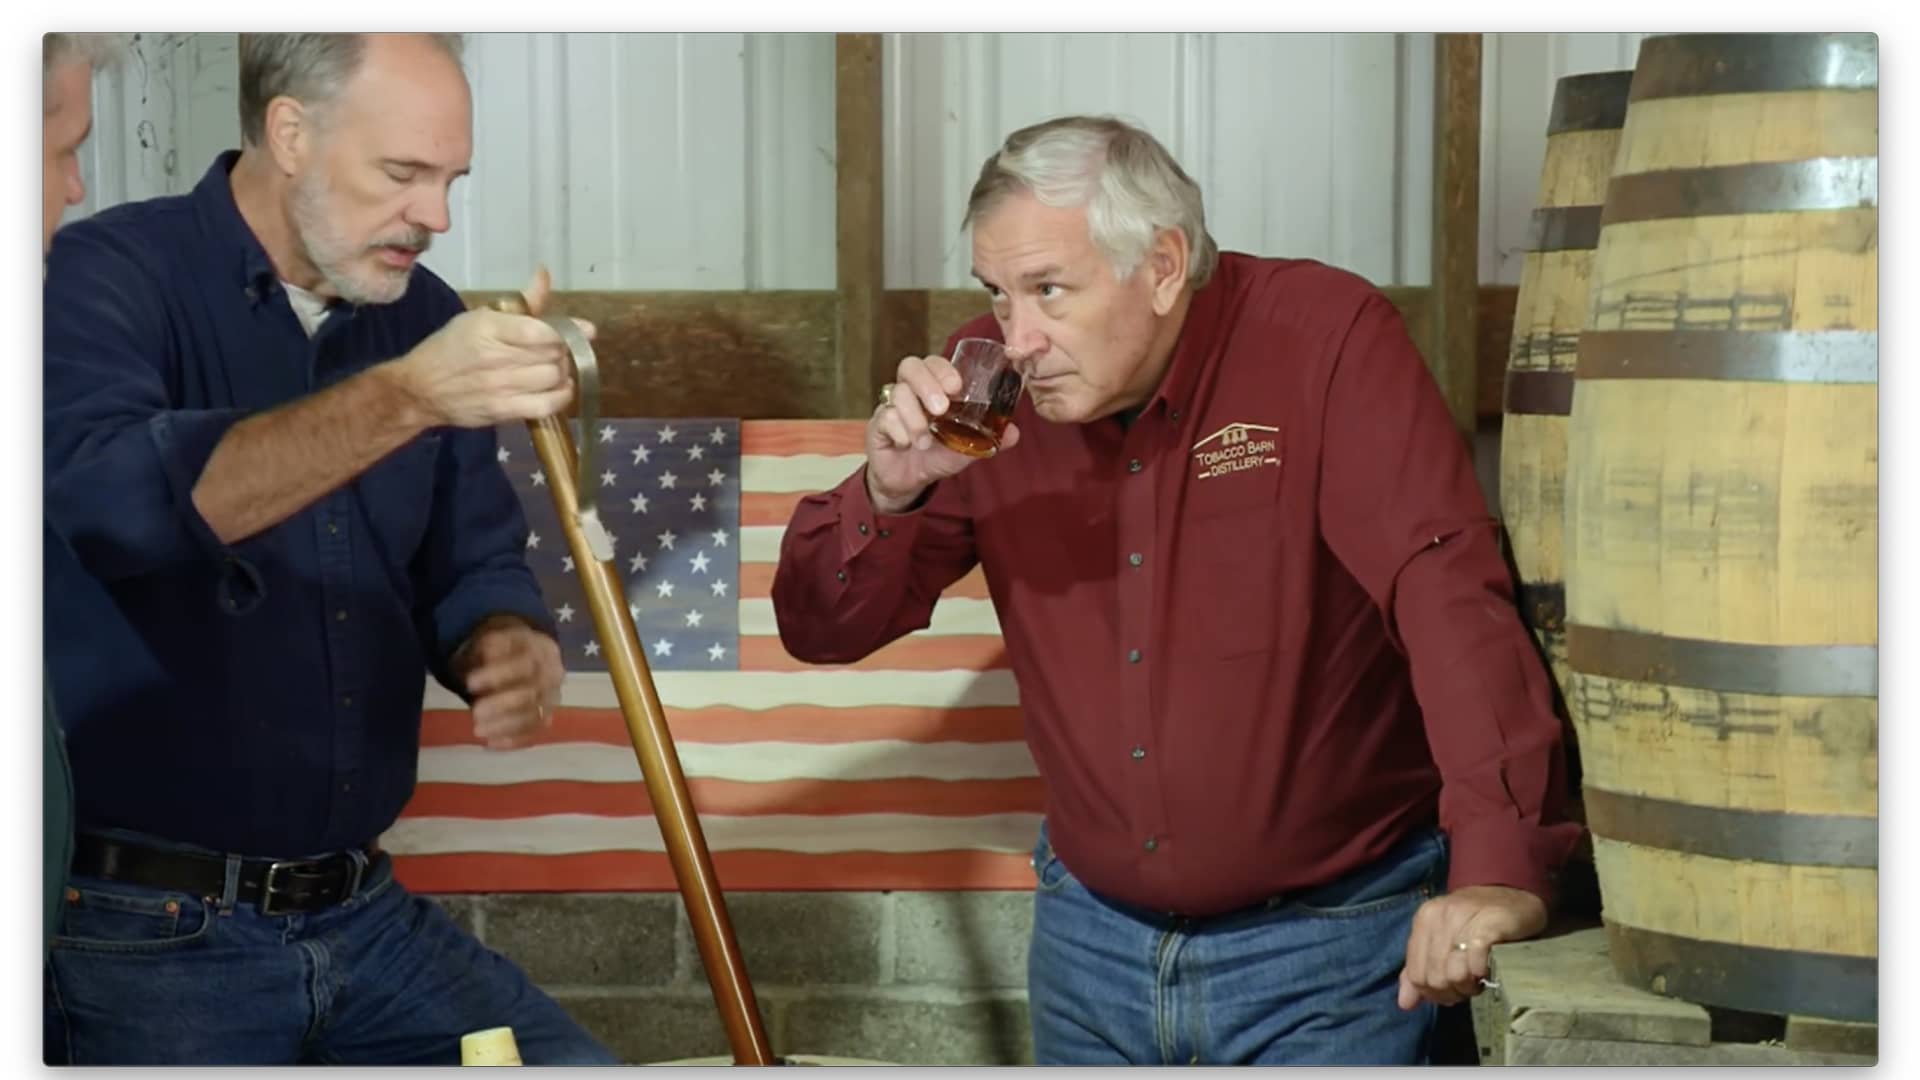 Retired Navy Rear Adm. Scott Sanders, right, and his business partners, Sean Coogan and Dan Dawson, from left, sample bourbon in the Tobacco Barn Distillery's rickhouse.